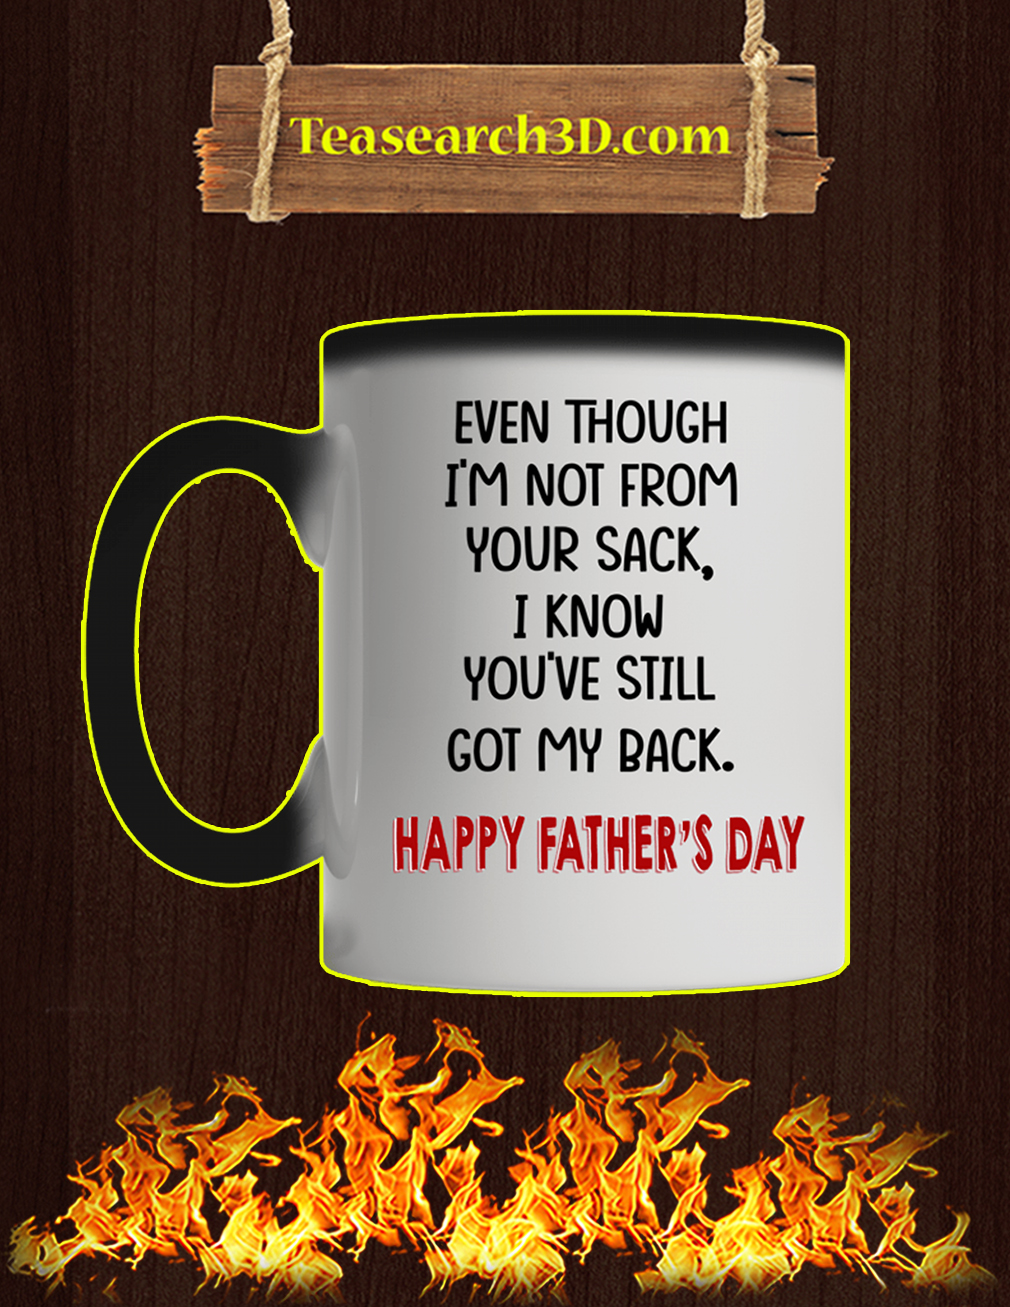 Happy father's day mug Even though i'm not from your sack i know you've still got my back magic